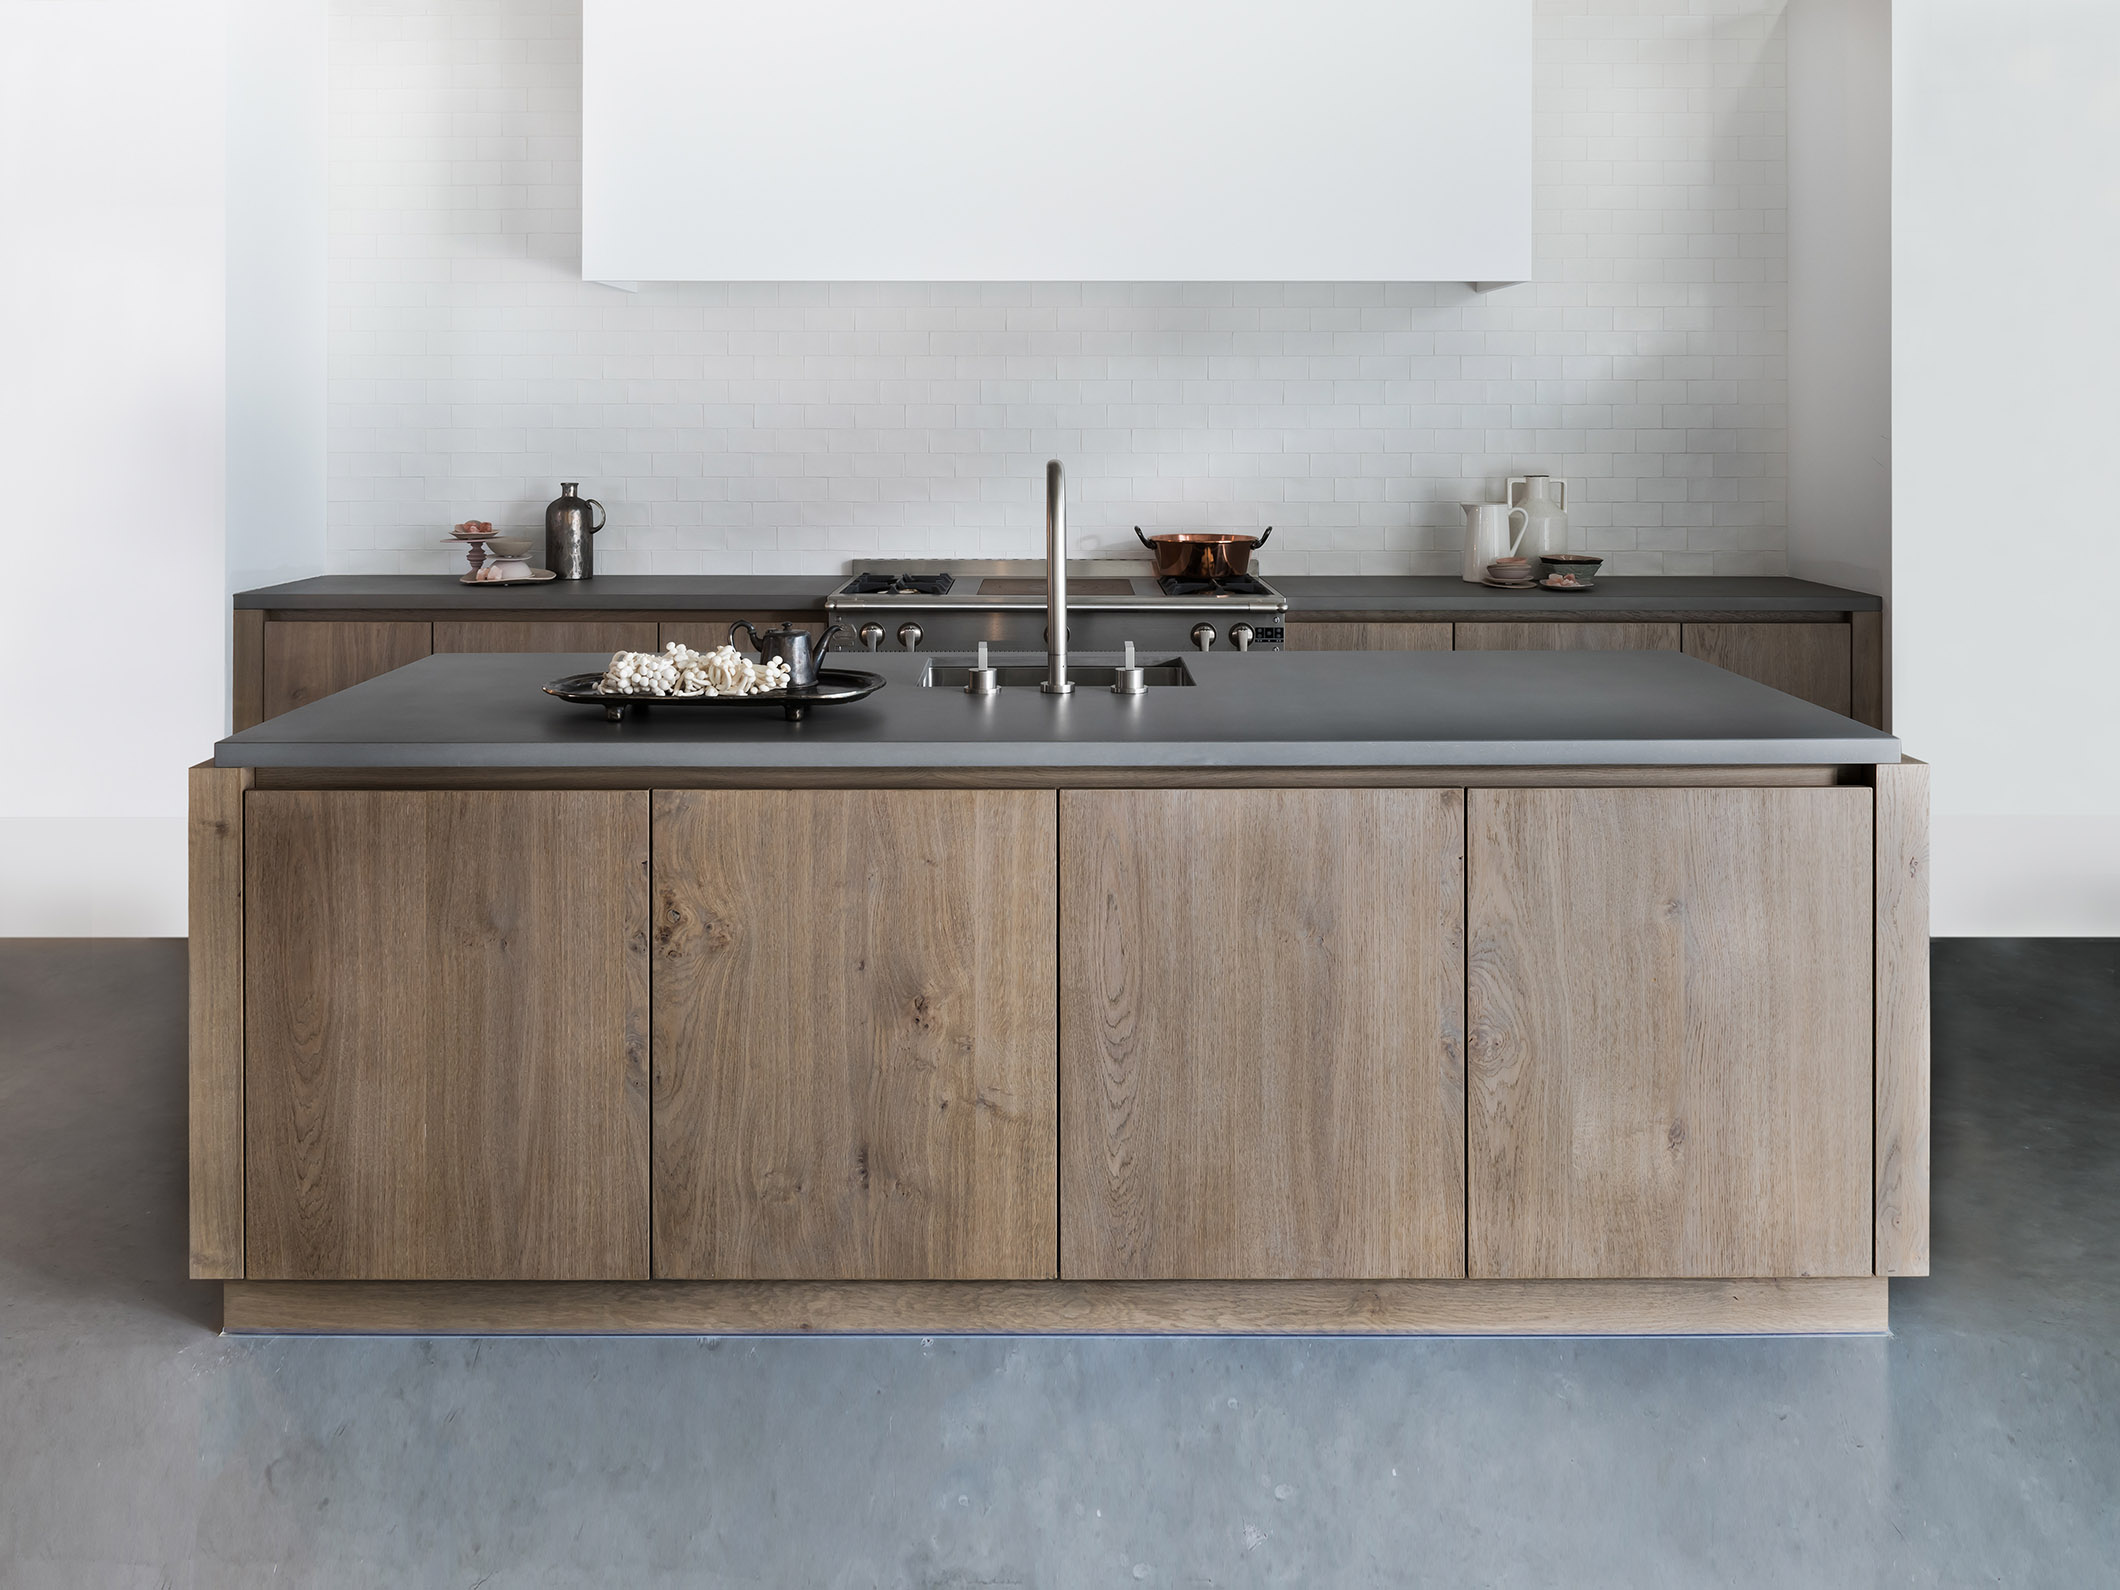 SIGNATURE kitchen and tiles and stones by Douglas & Jones